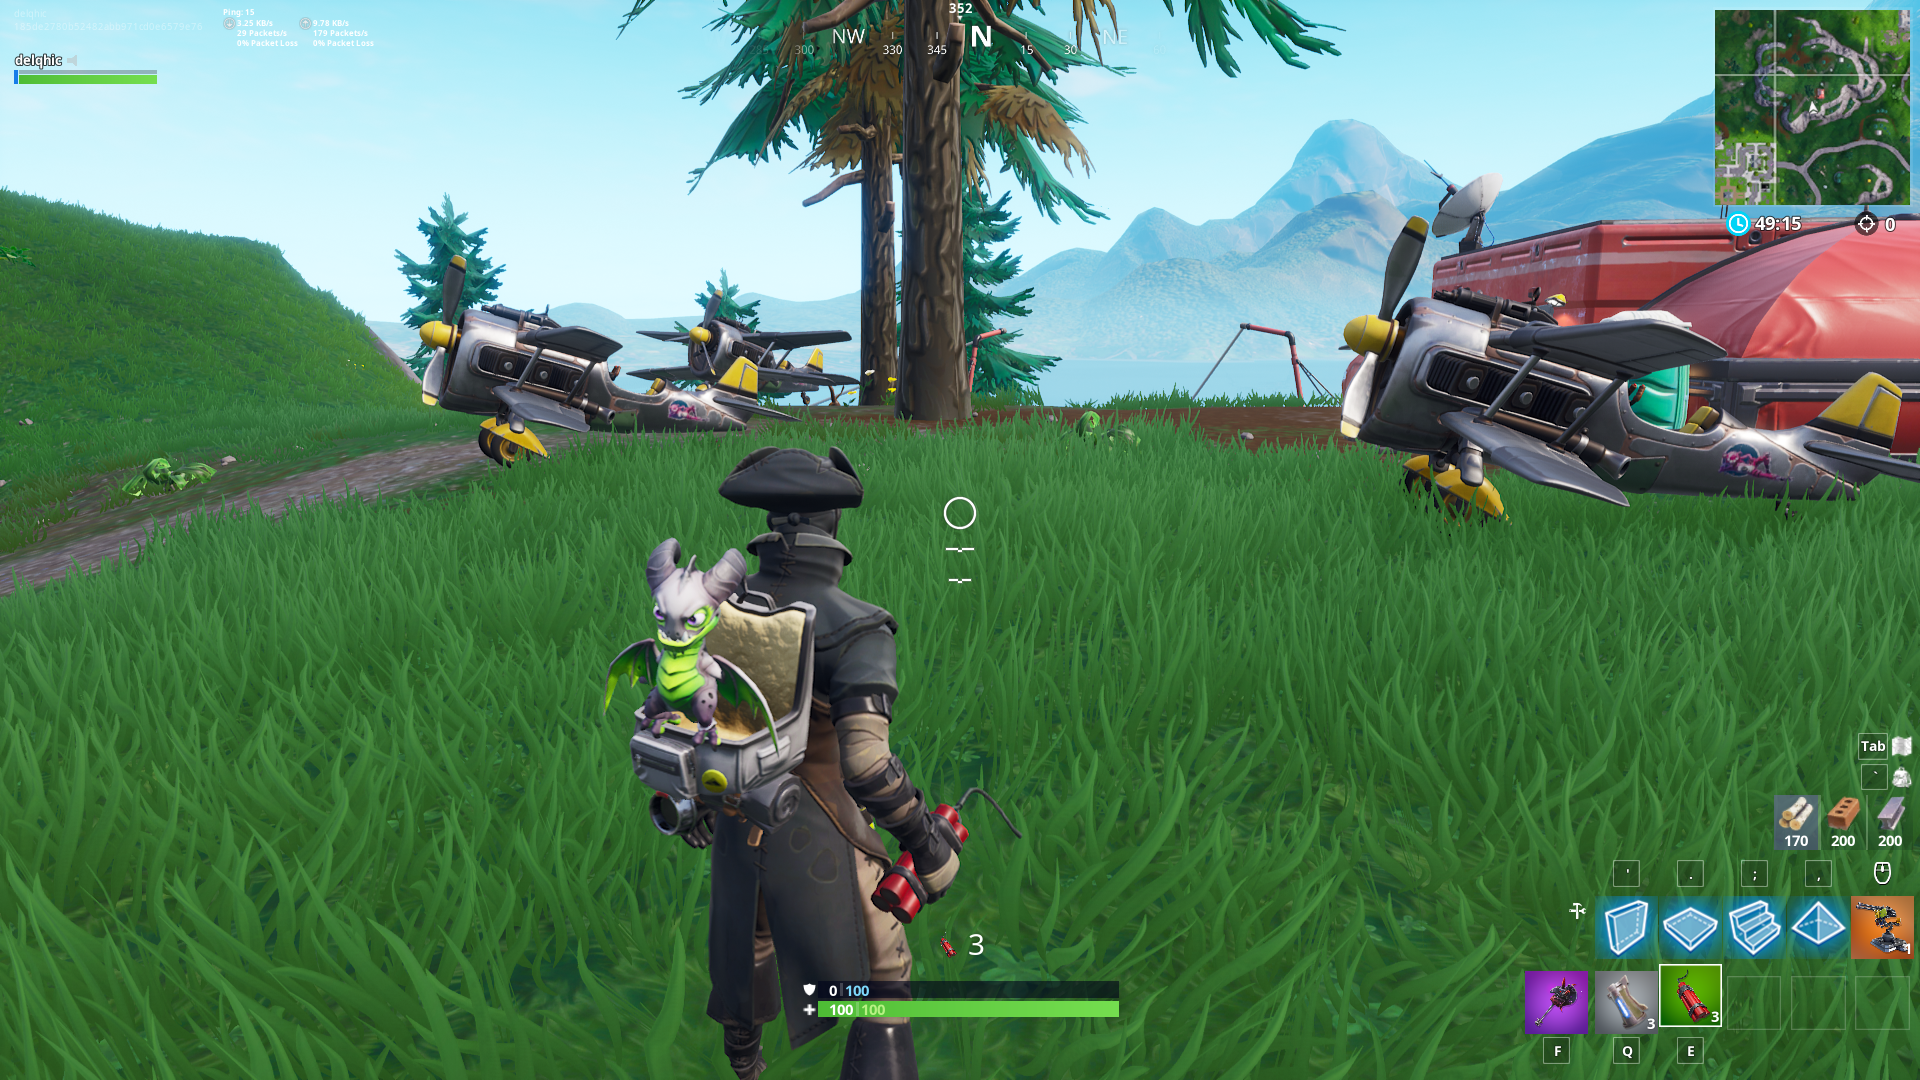 Fortnite Plane Spawn Location - Mountain north-east of Pleasant Park